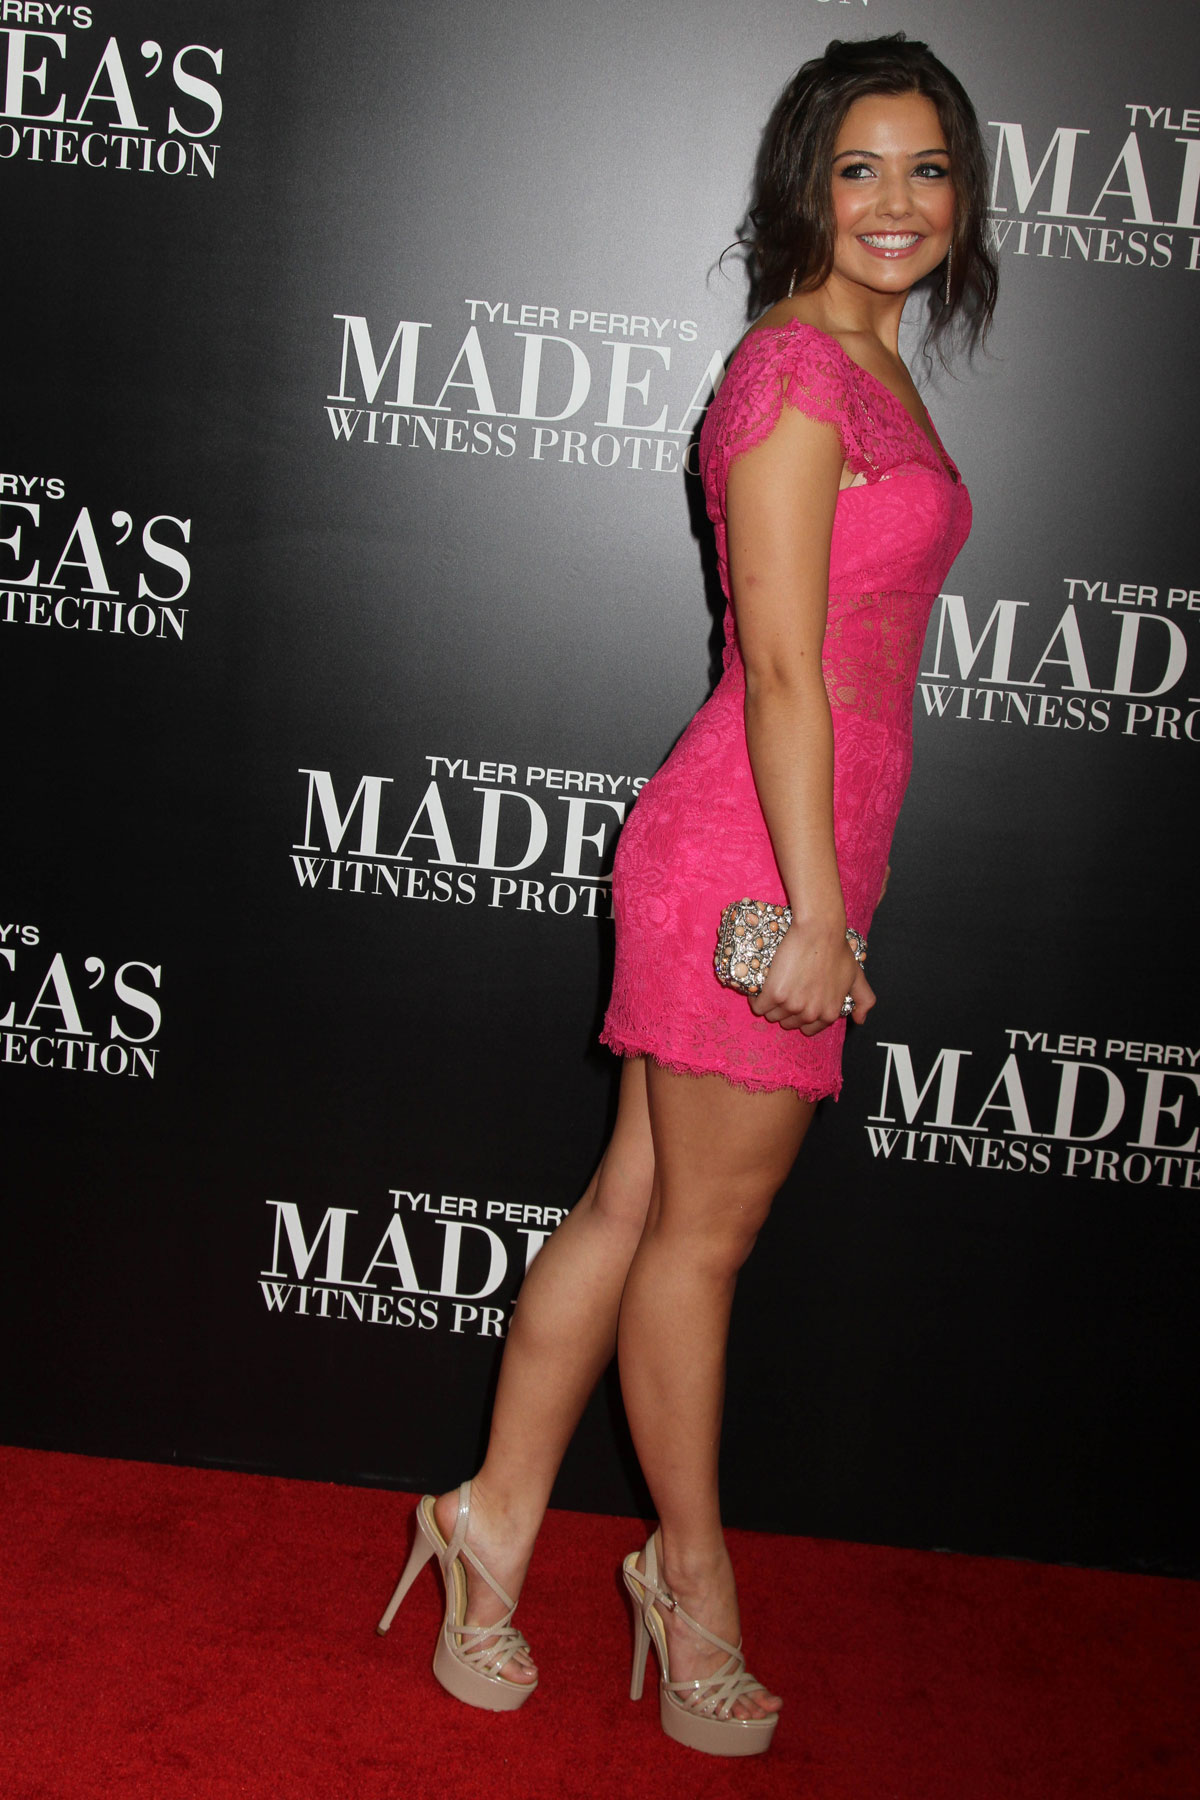 DANIELLE CAMPBELL at Madeas Witness Protection Premiere in ...